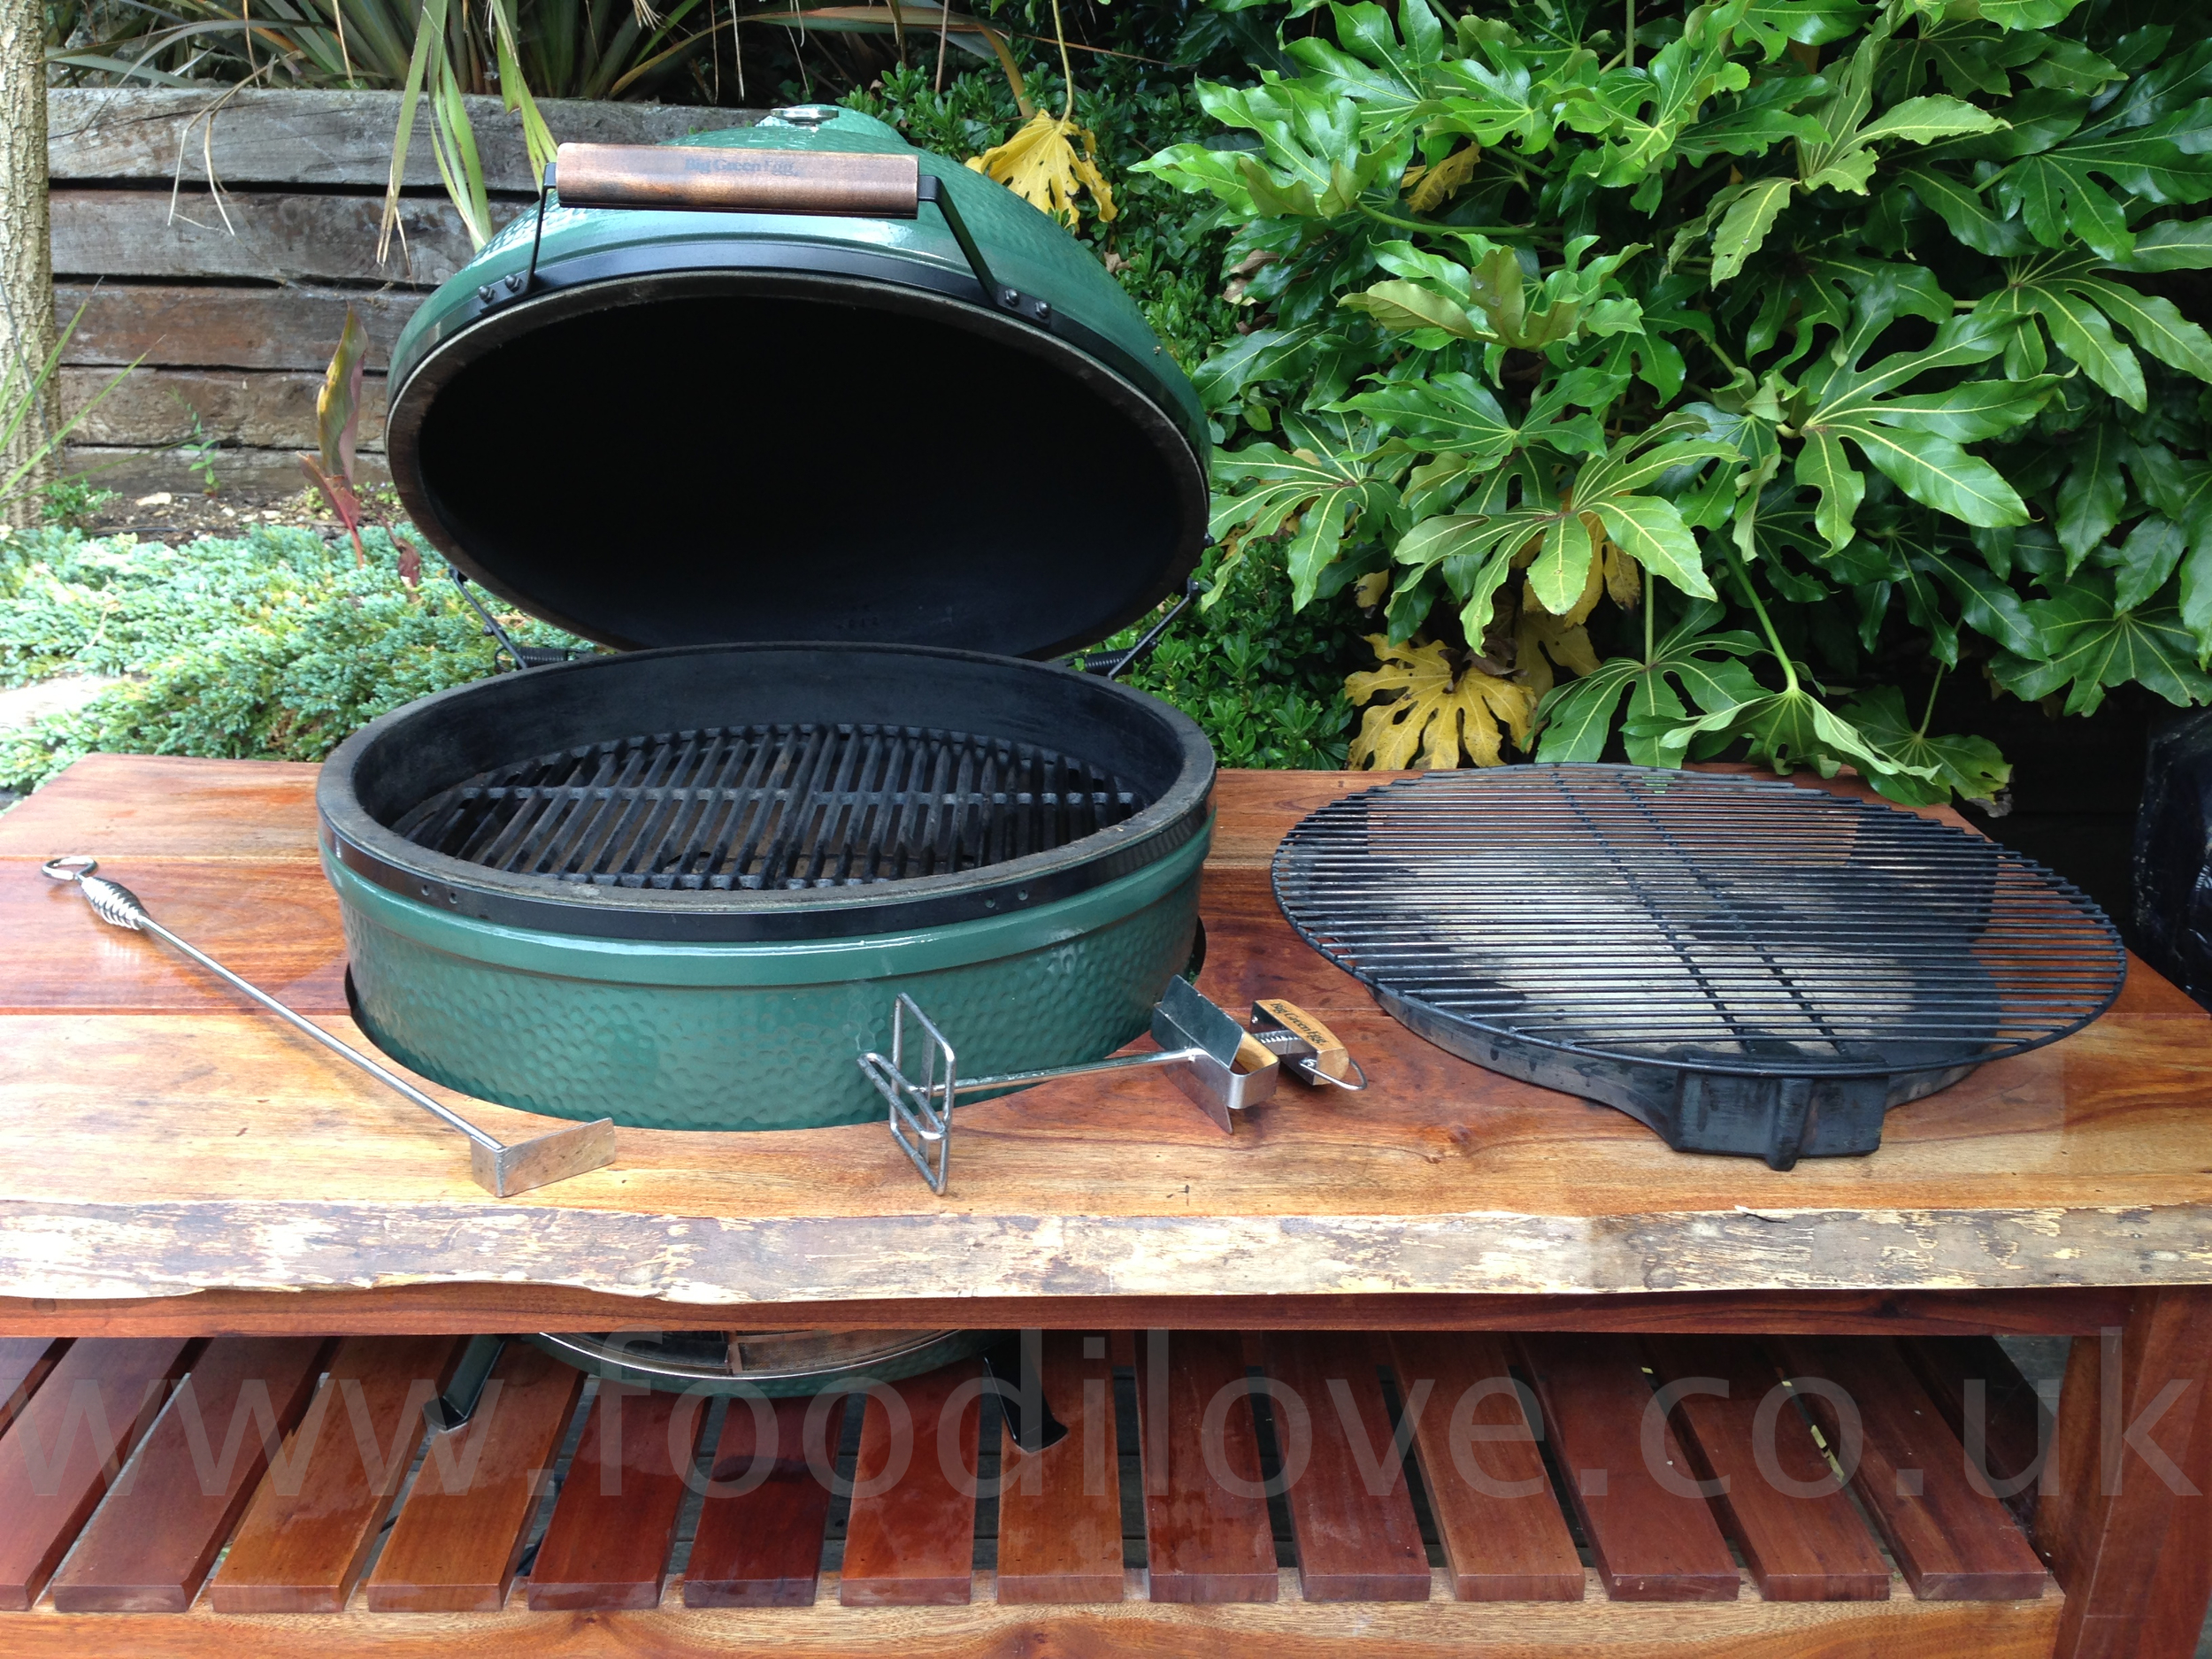 To Buy or Not To Buy a BigGreenEgg that is the question?